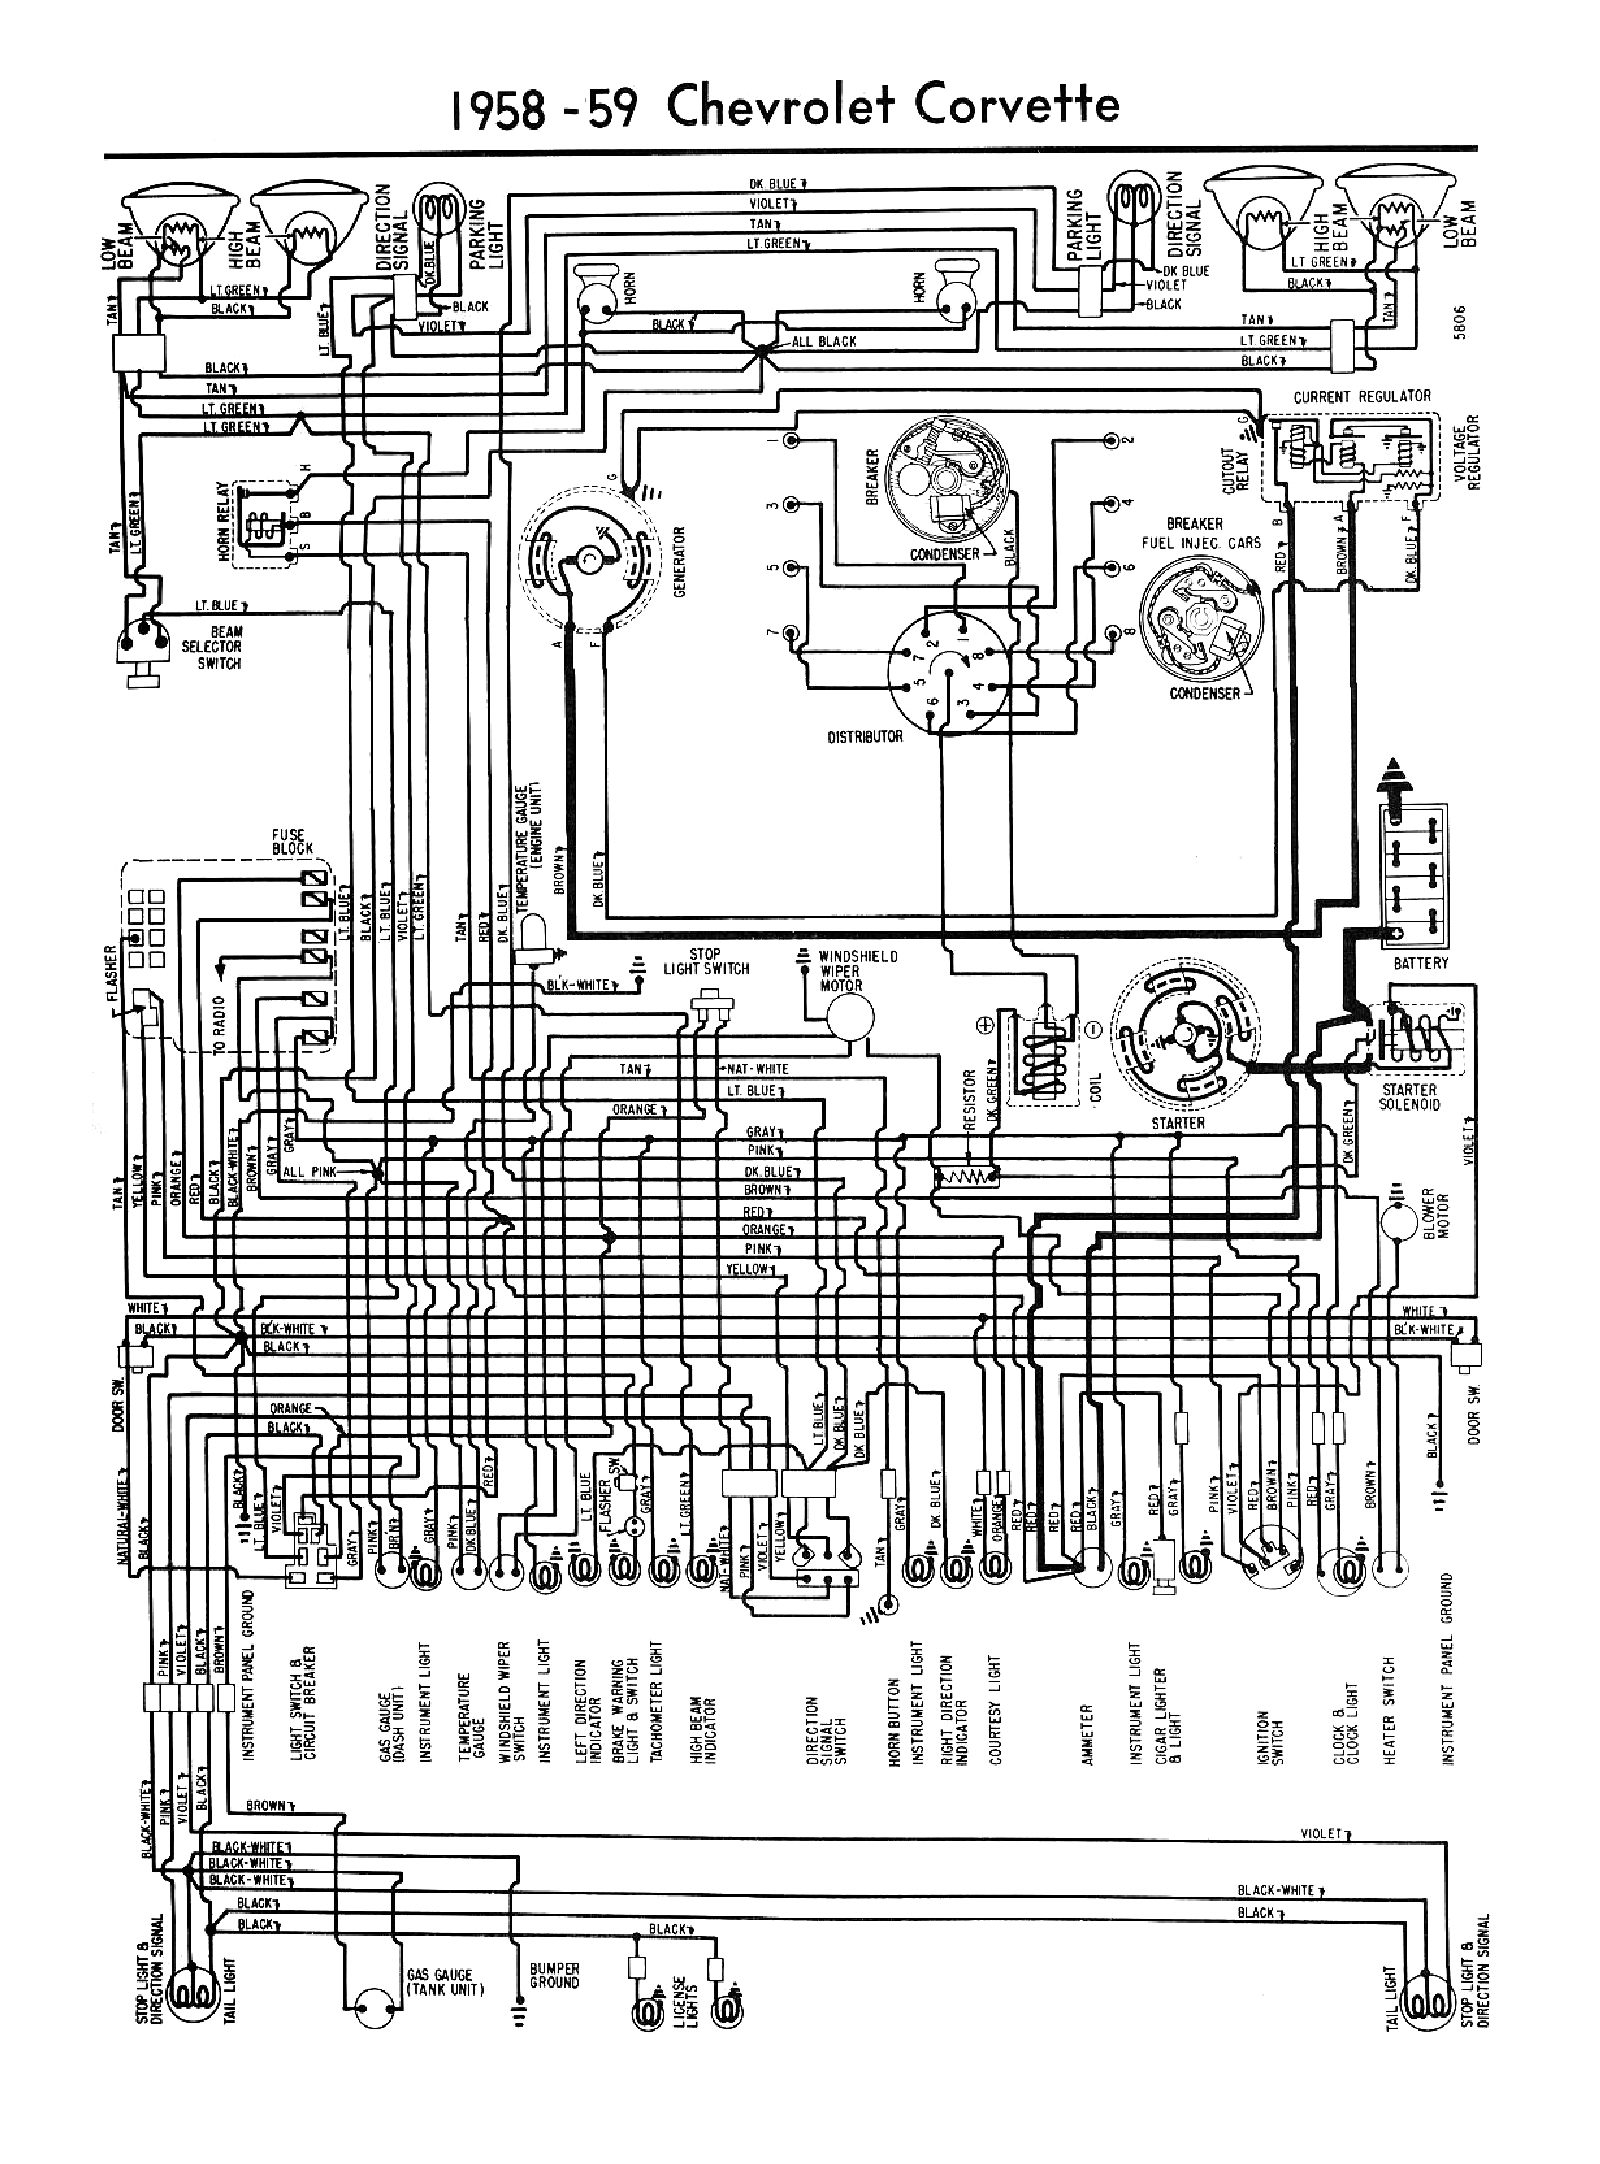 1958 Gmc Truck Wiring Diagram Electrical Diagrams 1970 Example U2022 Rh Olkha Co 2005